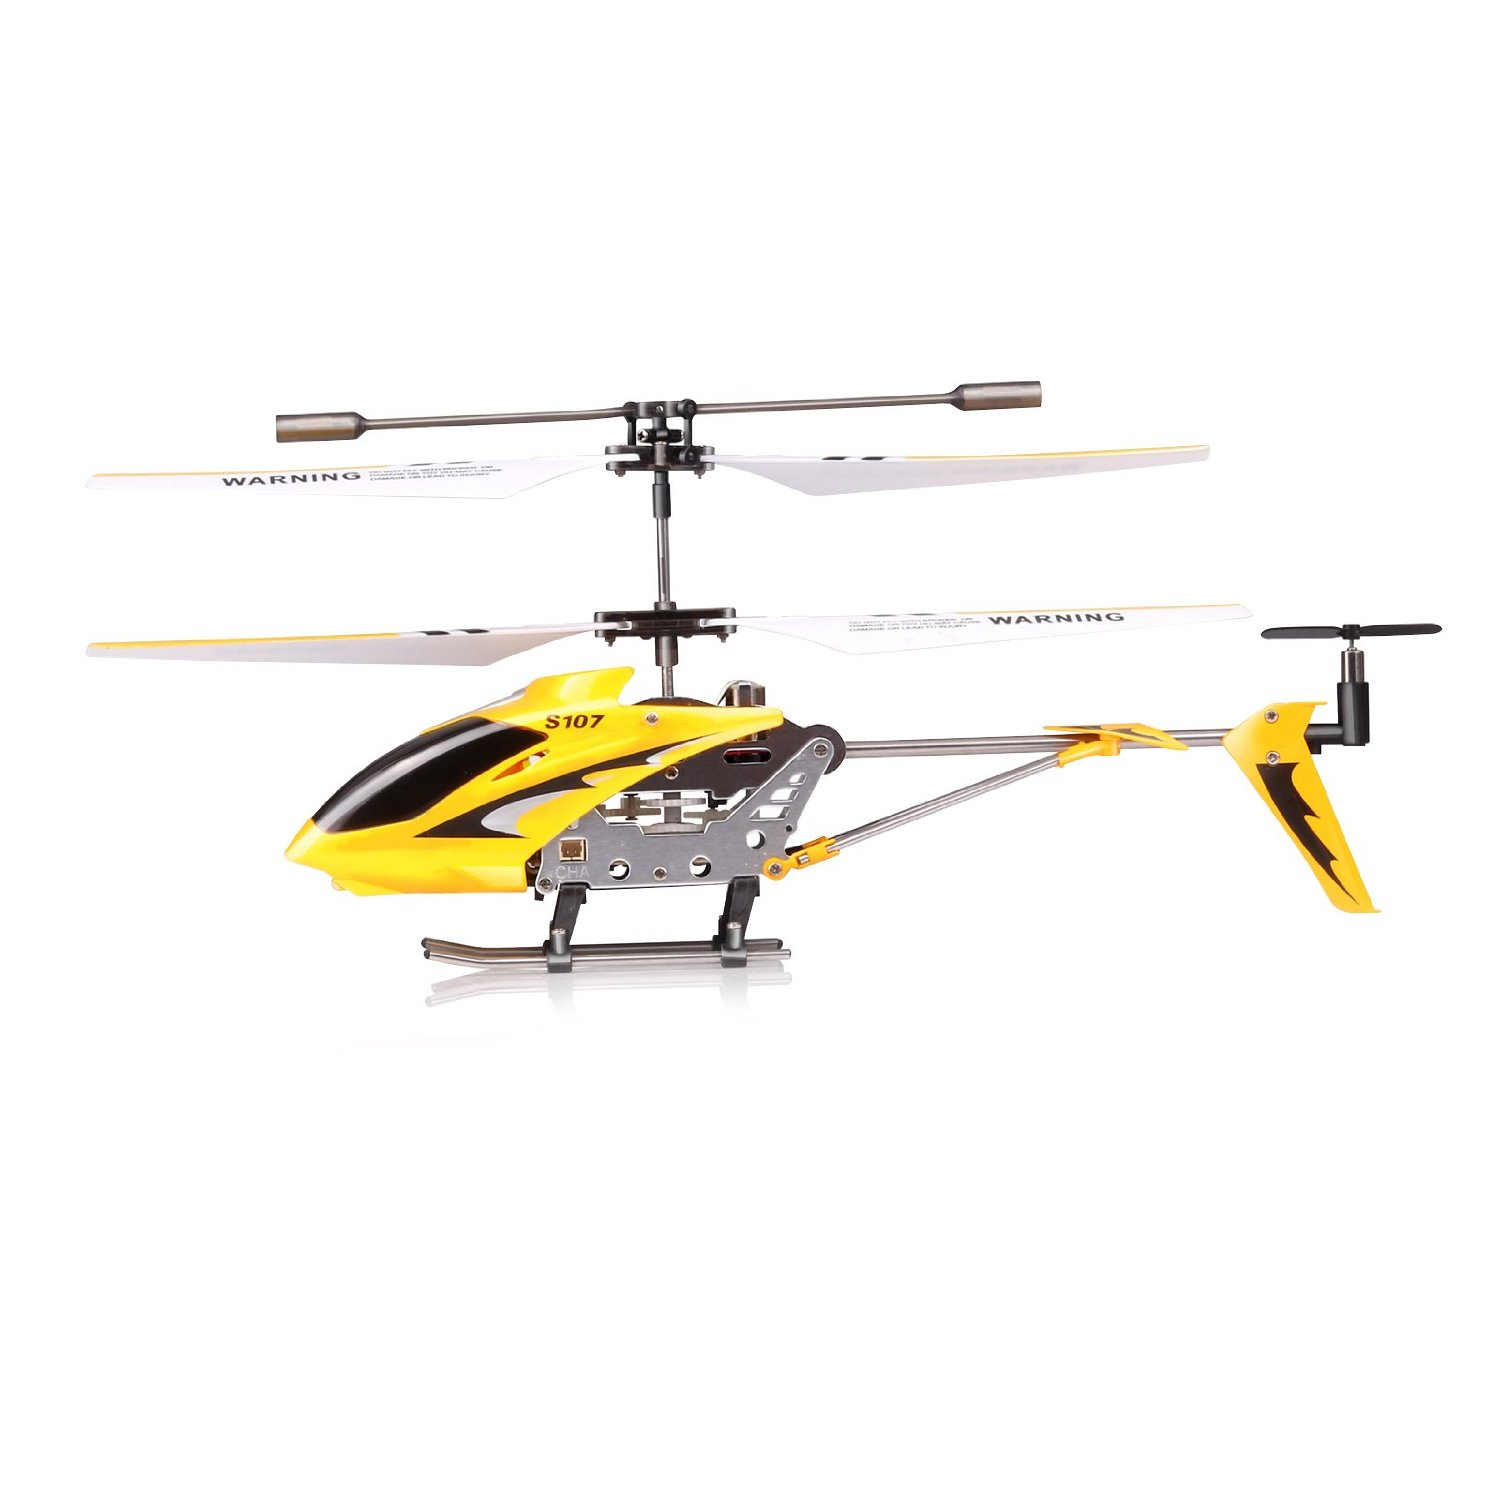 rc helicopter 3 5 channel with Syma S107s107g 3 5 Channel Rc Helicopter With Gyro on Watch likewise 181861778069 as well Hot Sales V Max Hx713 2 5ch Rc Helicopter Radio Control Children Kids Thengst I1450300 2007 01 Sale I likewise Syma S107 Rc Helicopter Only 19 83 Reg 129 99 likewise Toy Remote Control Helicopters.